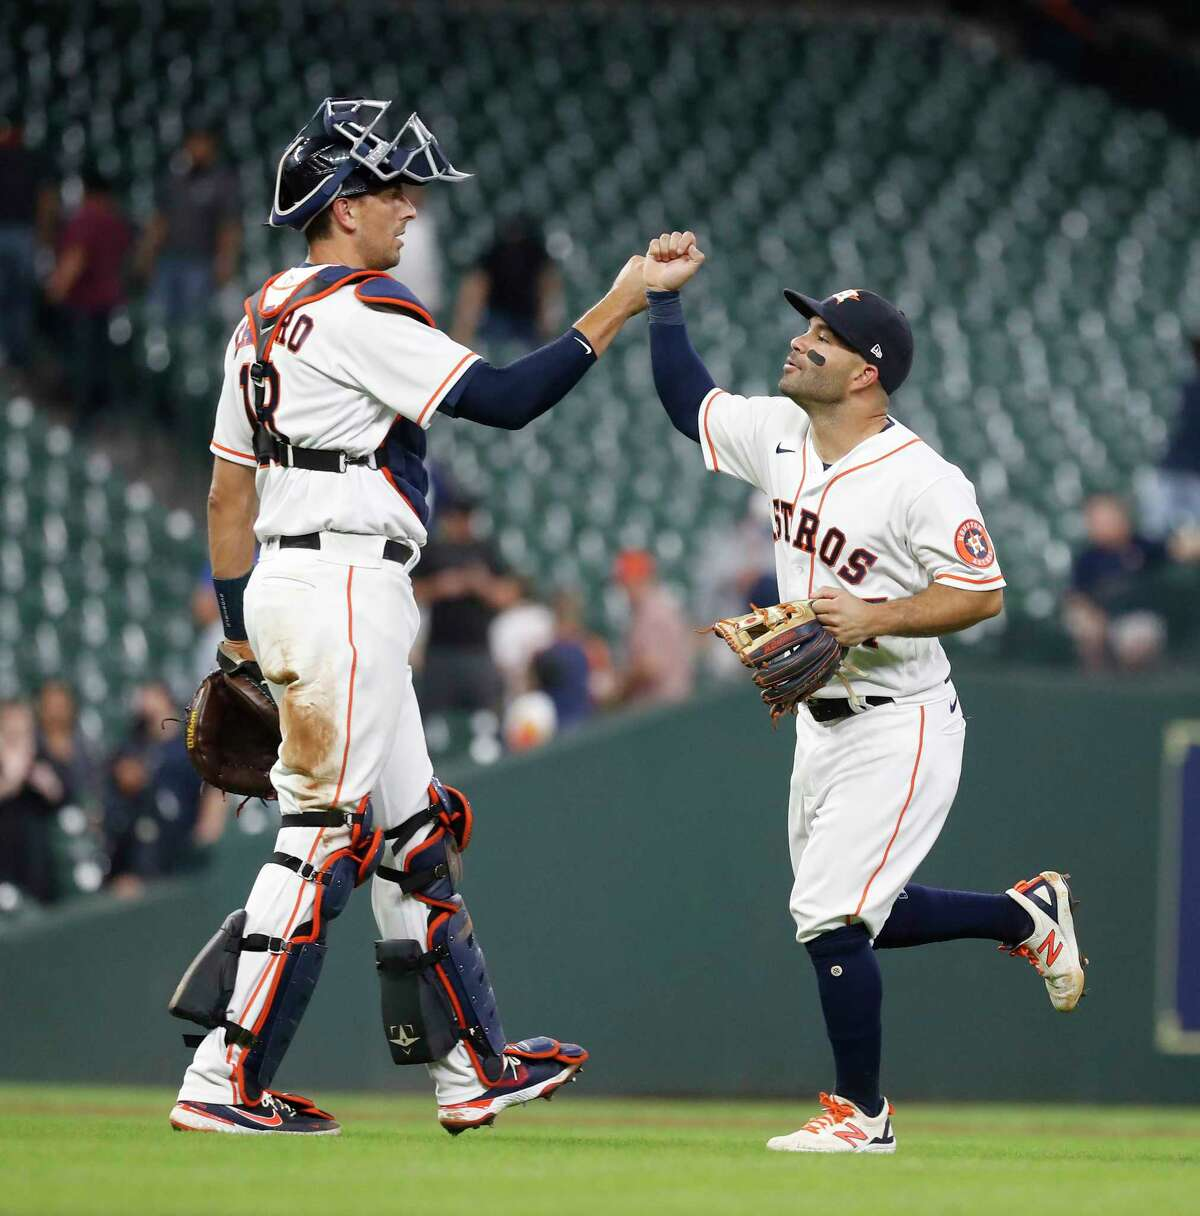 Houston Astros Jose Altuve (27) high fives catcher Jason Castro (18) after Seattle Mariners J.P. Crawford ground out to end an MLB baseball game at Minute Maid Park, Wednesday, April 28, 2021, in Houston. Astros came from behind to beat the Seattle Mariners 7-5.